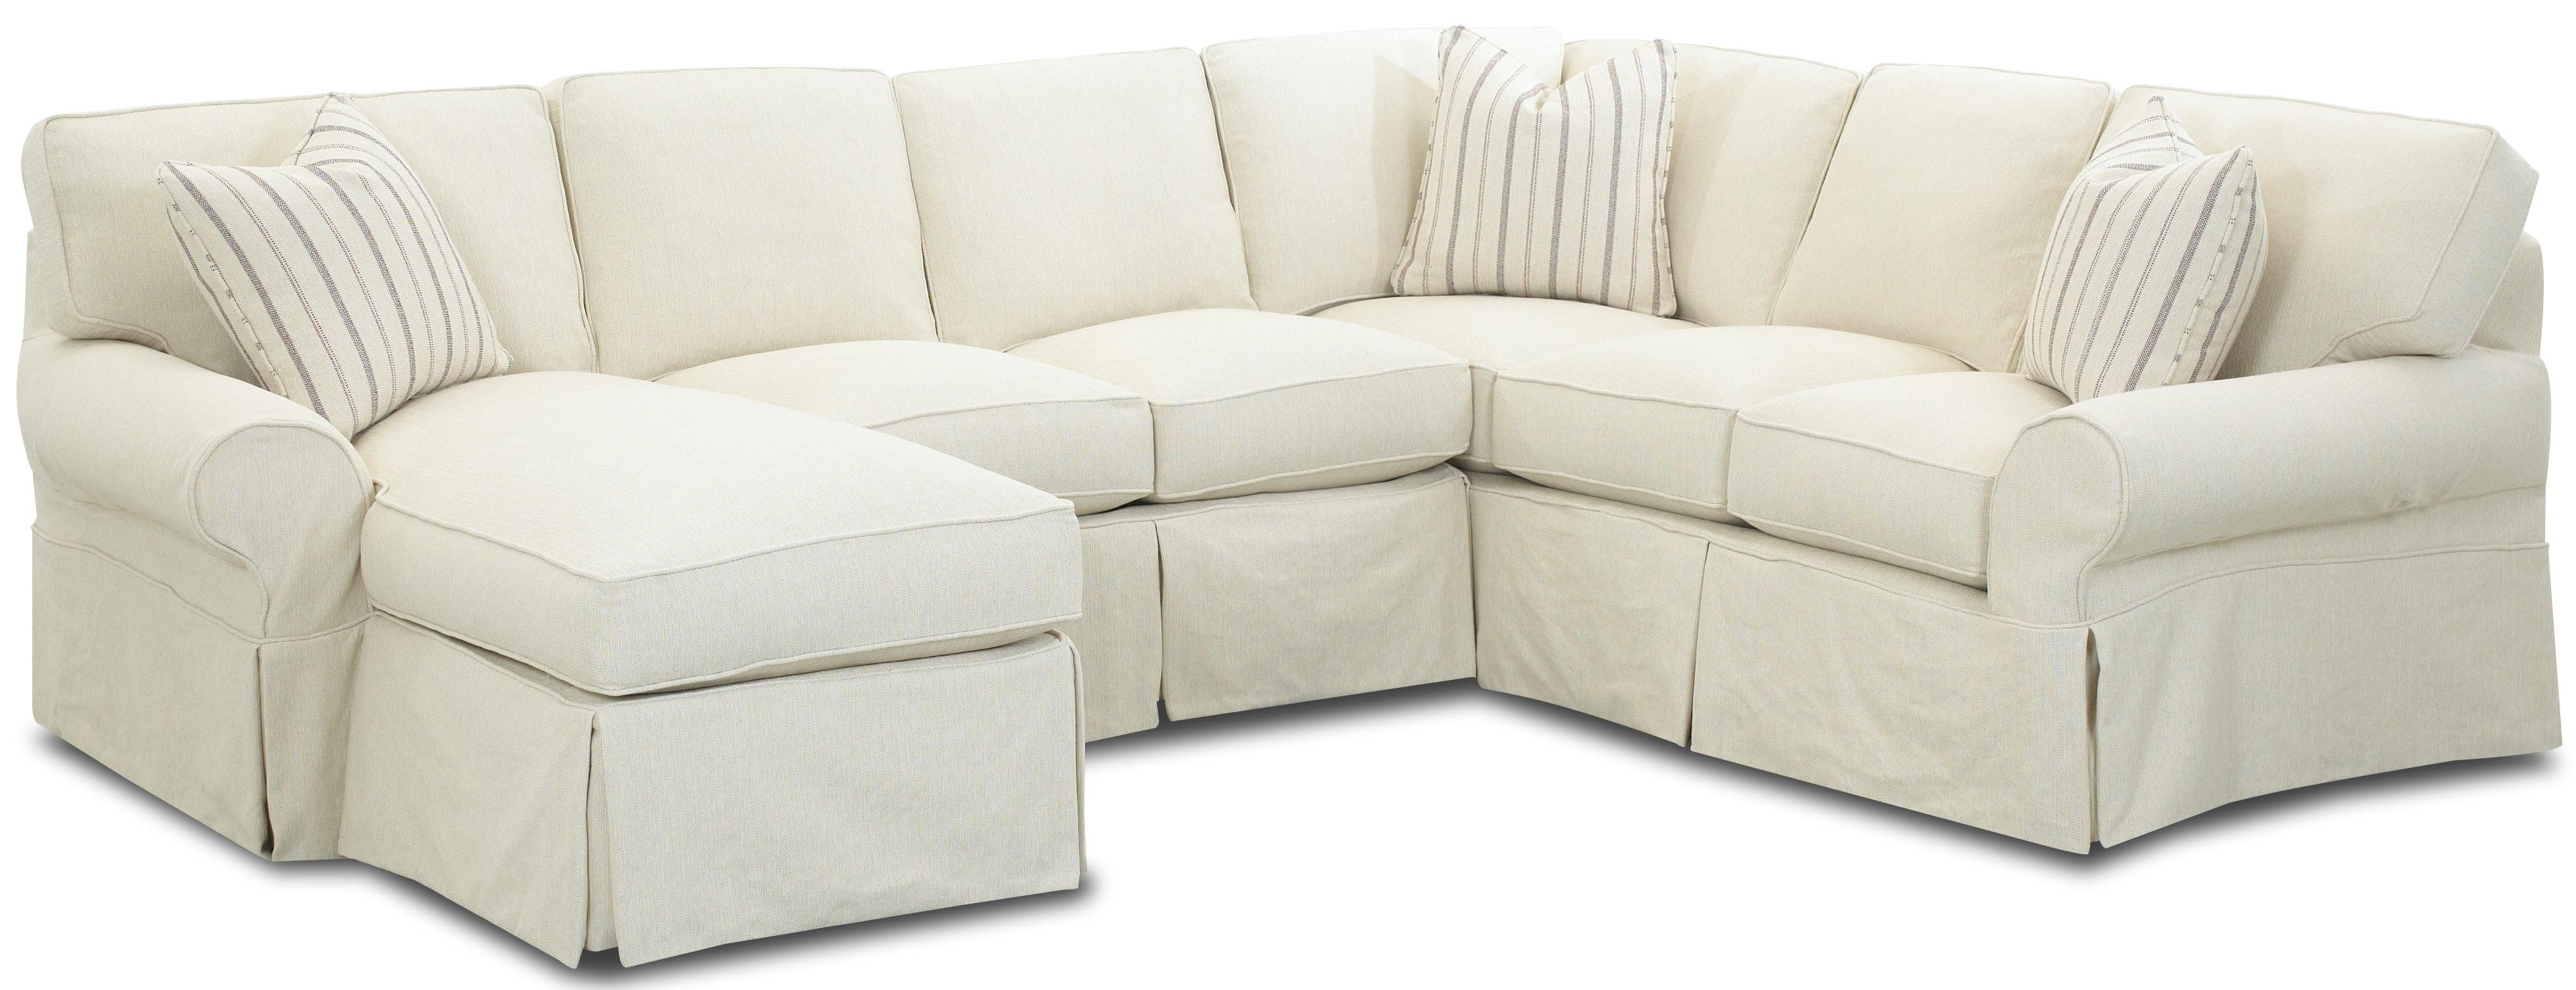 Awesome Slipcover Sectional Sofa With Chaise 91 For Modern Sofa With Well Known Slipcovers For Sectionals With Chaise (View 2 of 15)